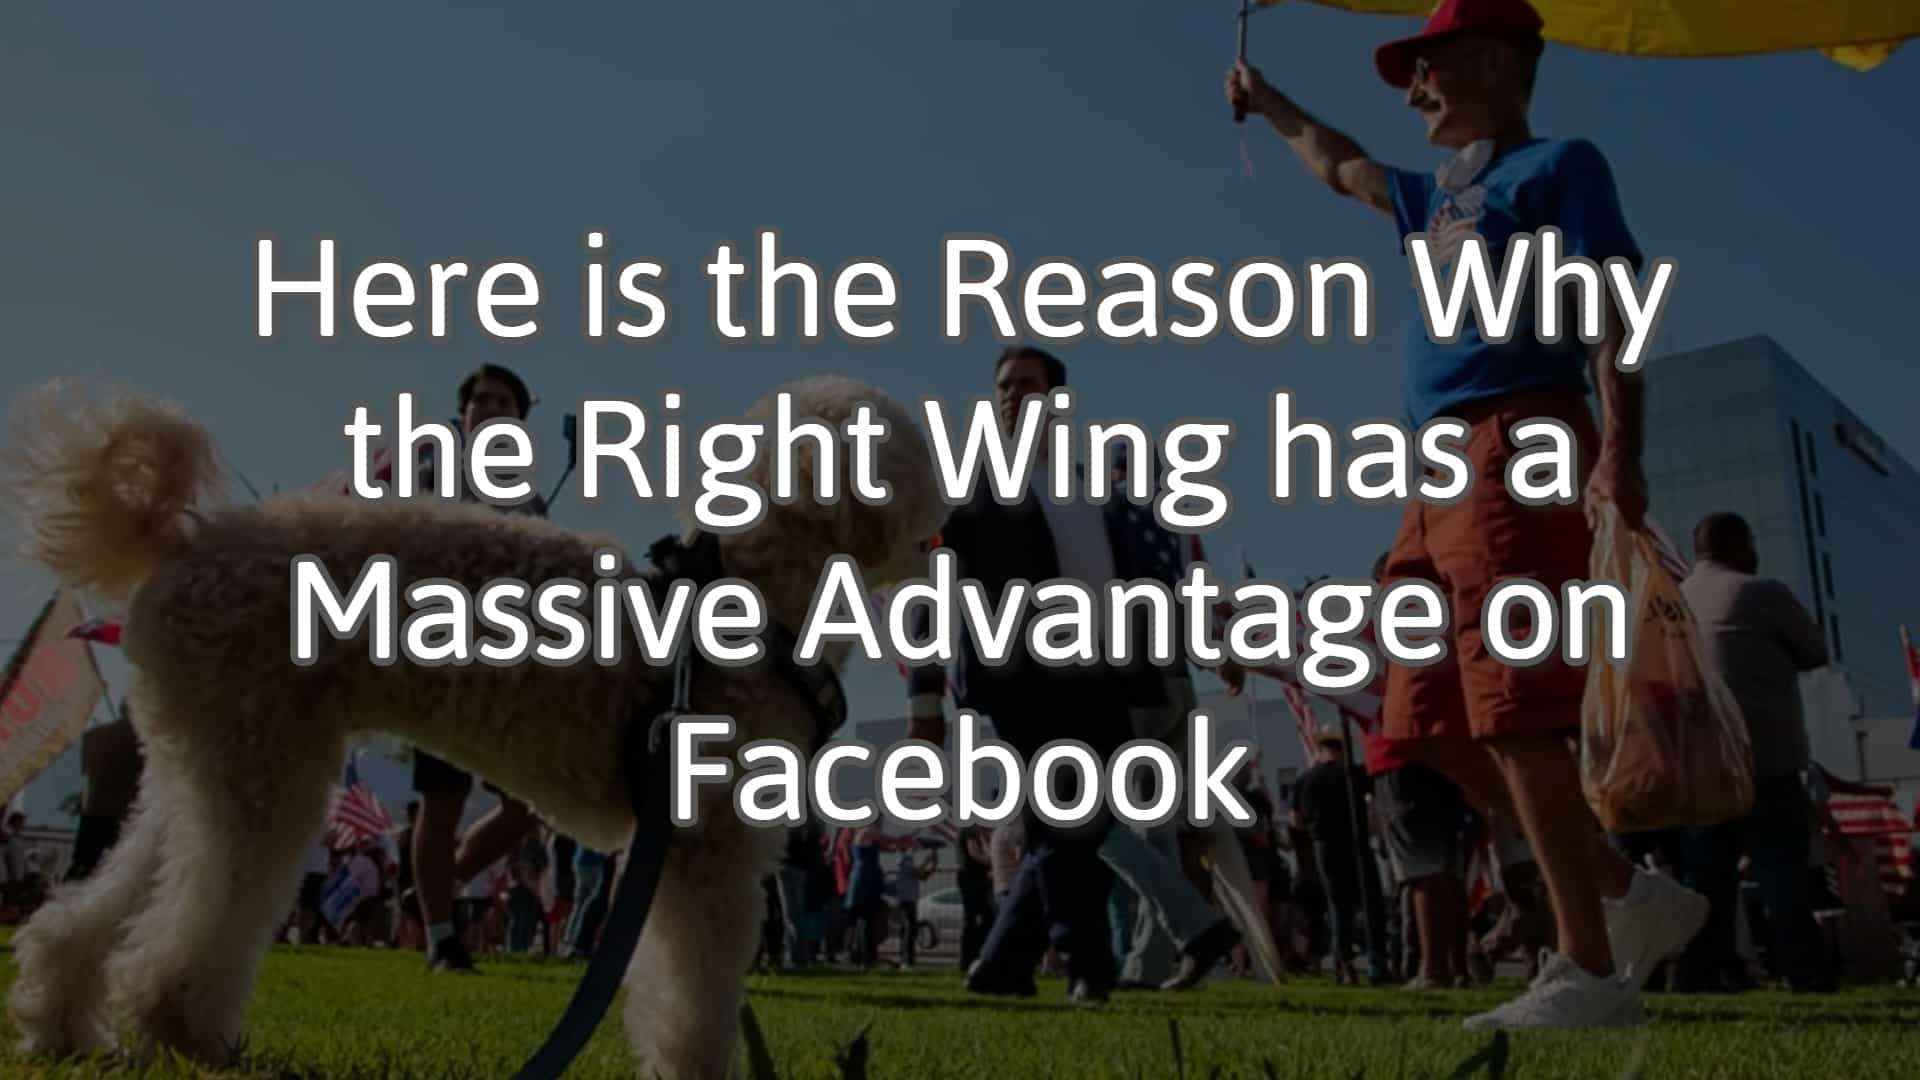 Here is the Reason Why the Right Wing has a Massive Advantage on Facebook